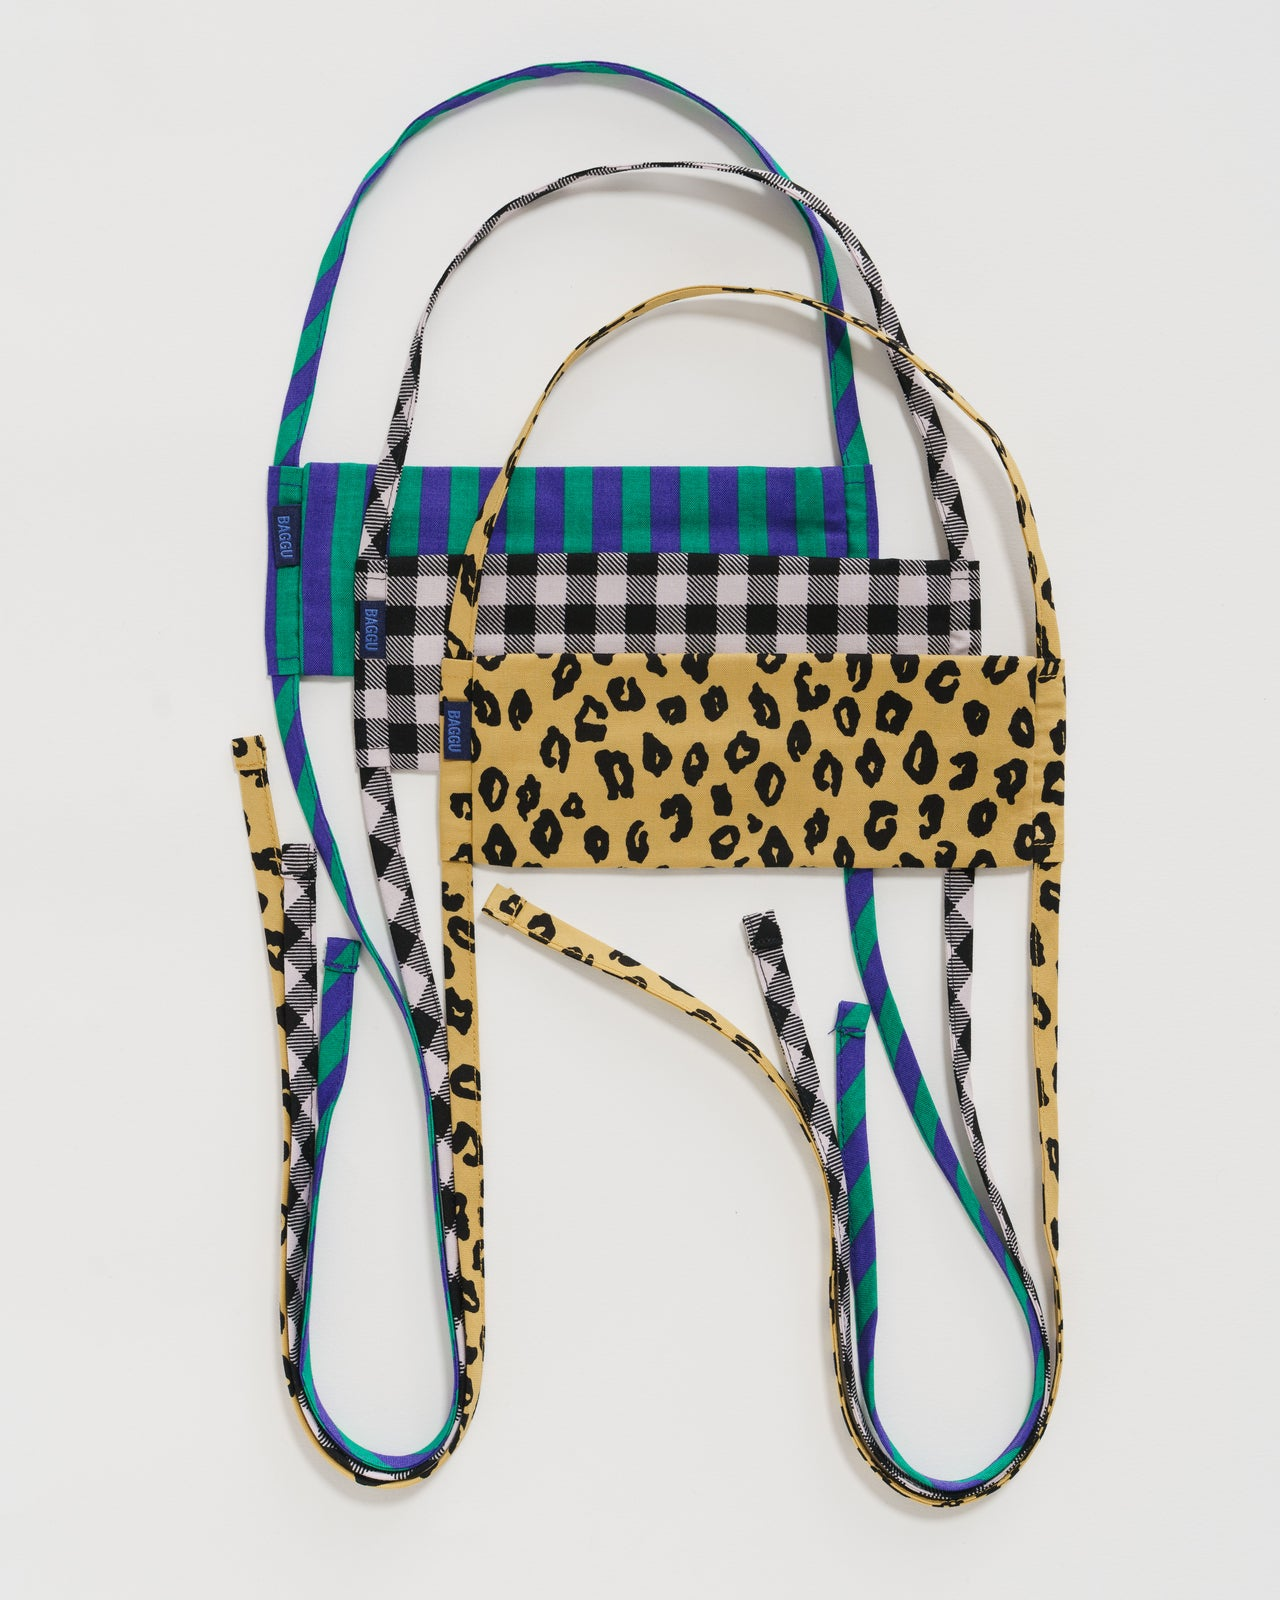 Fabric Mask Set Tie - Gingham, Leopard and Stripes